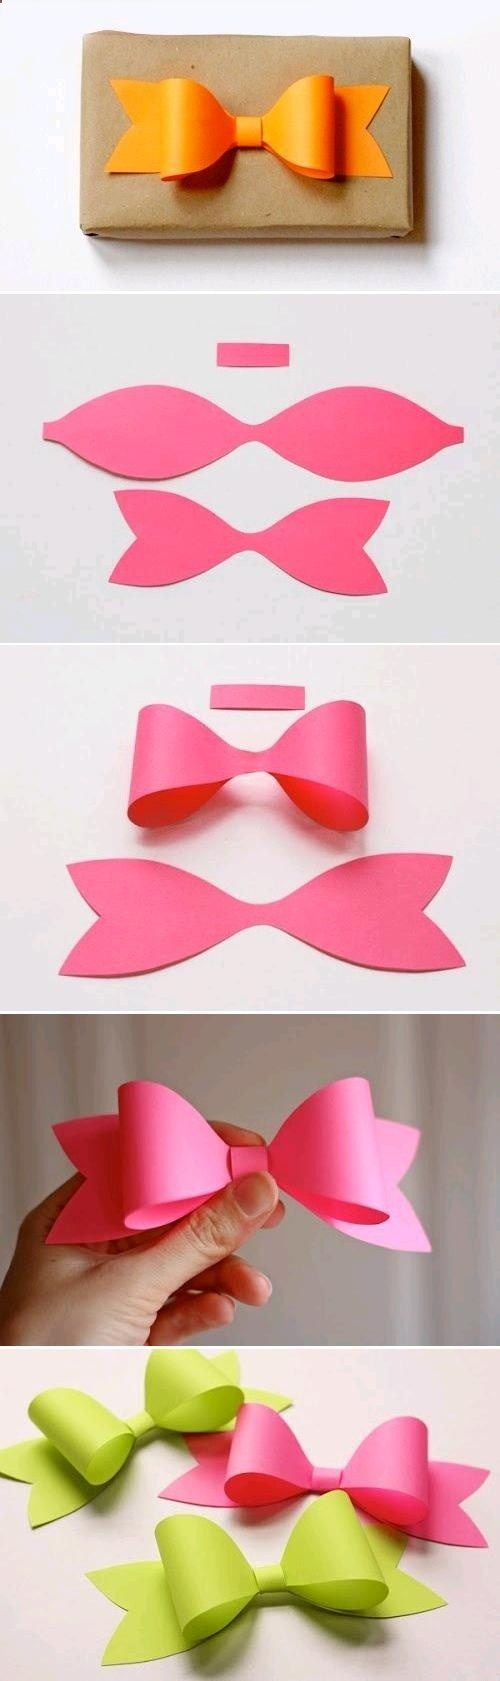 DIY How to make a bow for a gift these are sooo cute!